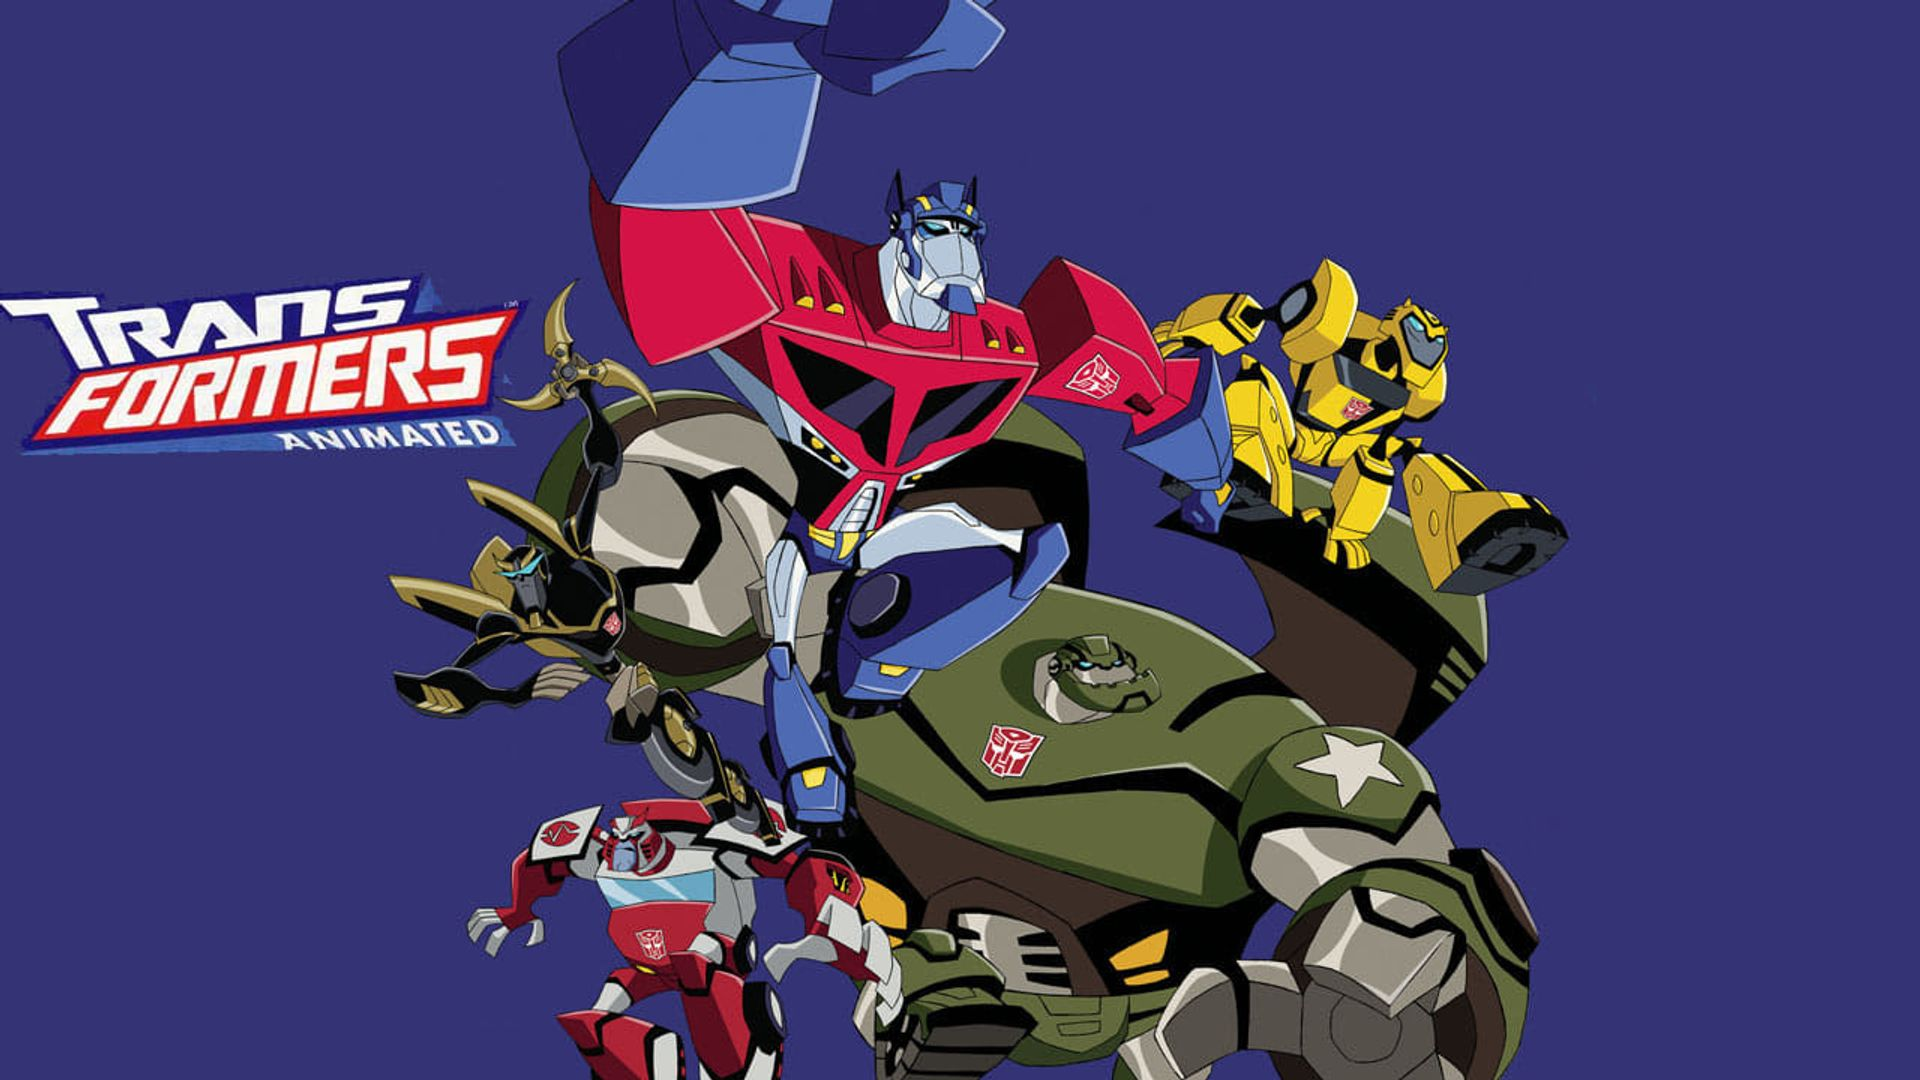 Transformers Animated Watch Episodes On Tubi Vudu And Streaming Online Reelgood